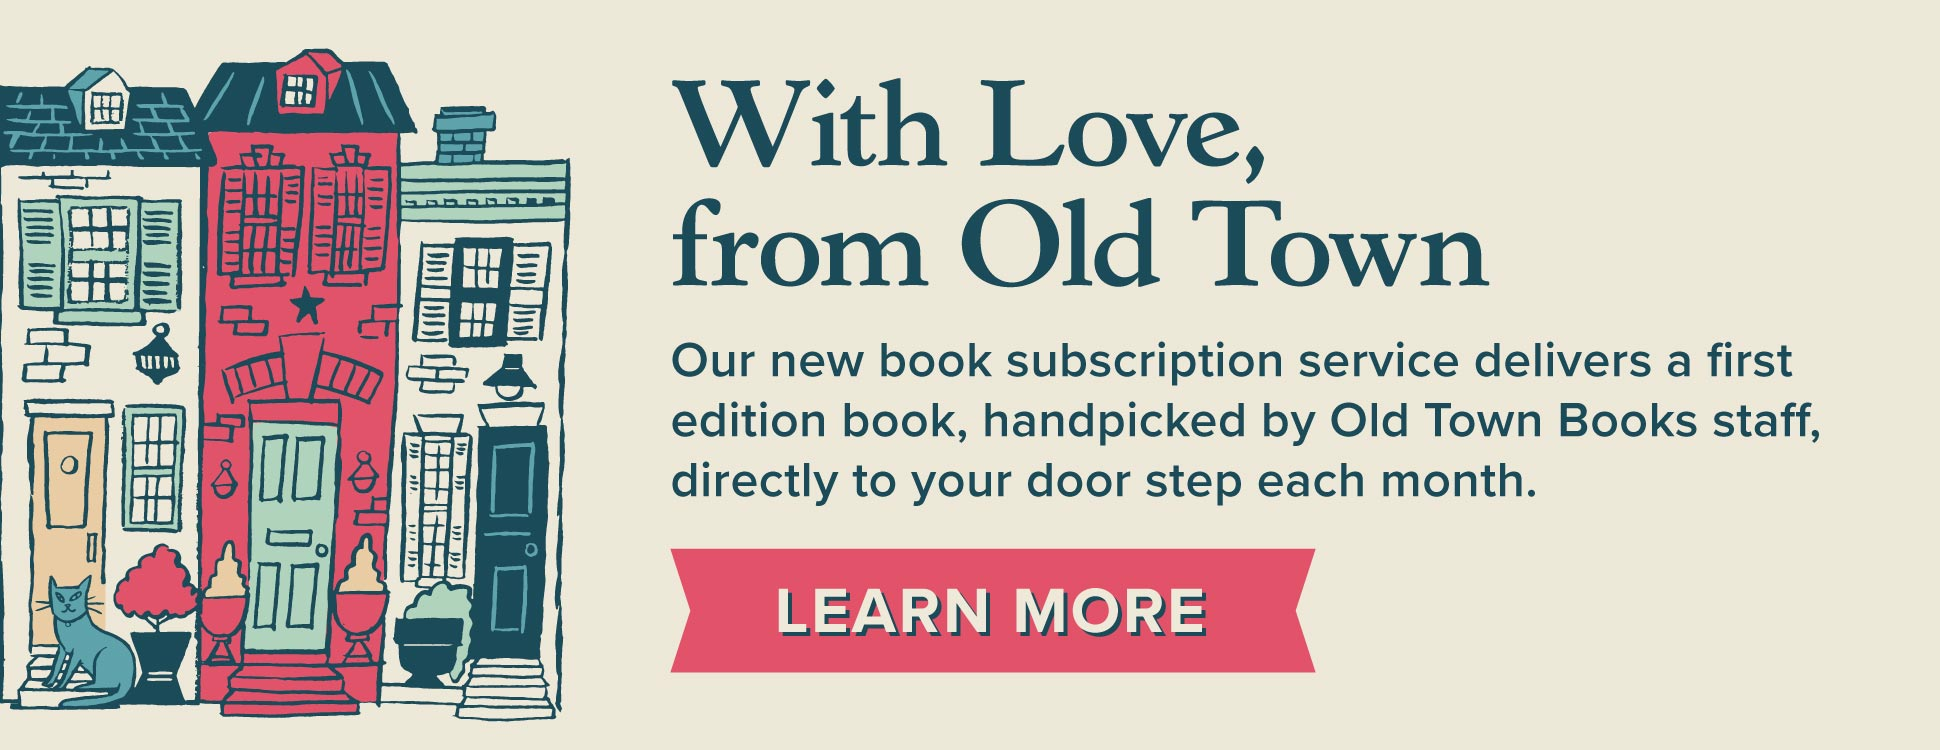 With Love, From Old Town. Click here to learn more about our book subscription service.